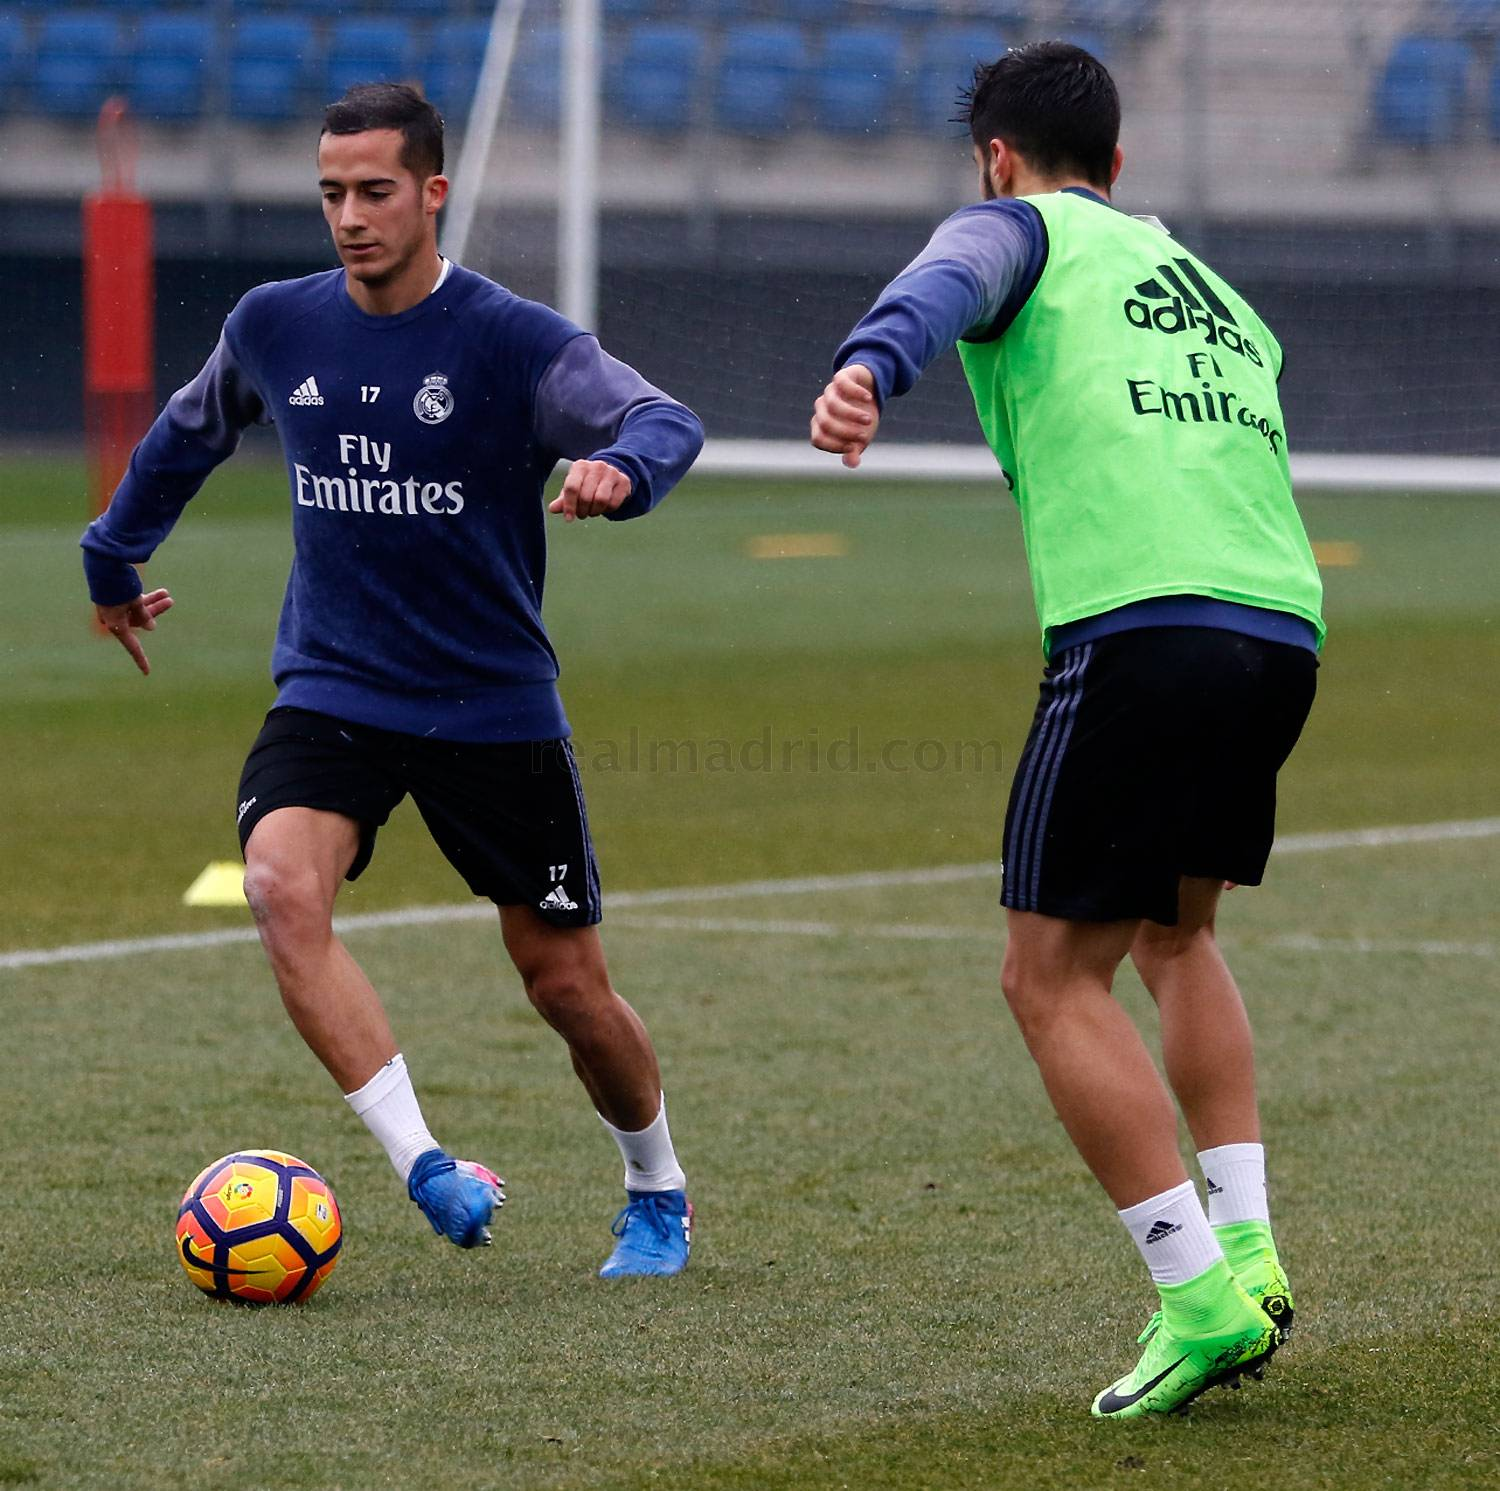 Real Madrid - Entrenamiento del Real Madrid - 01-02-2017